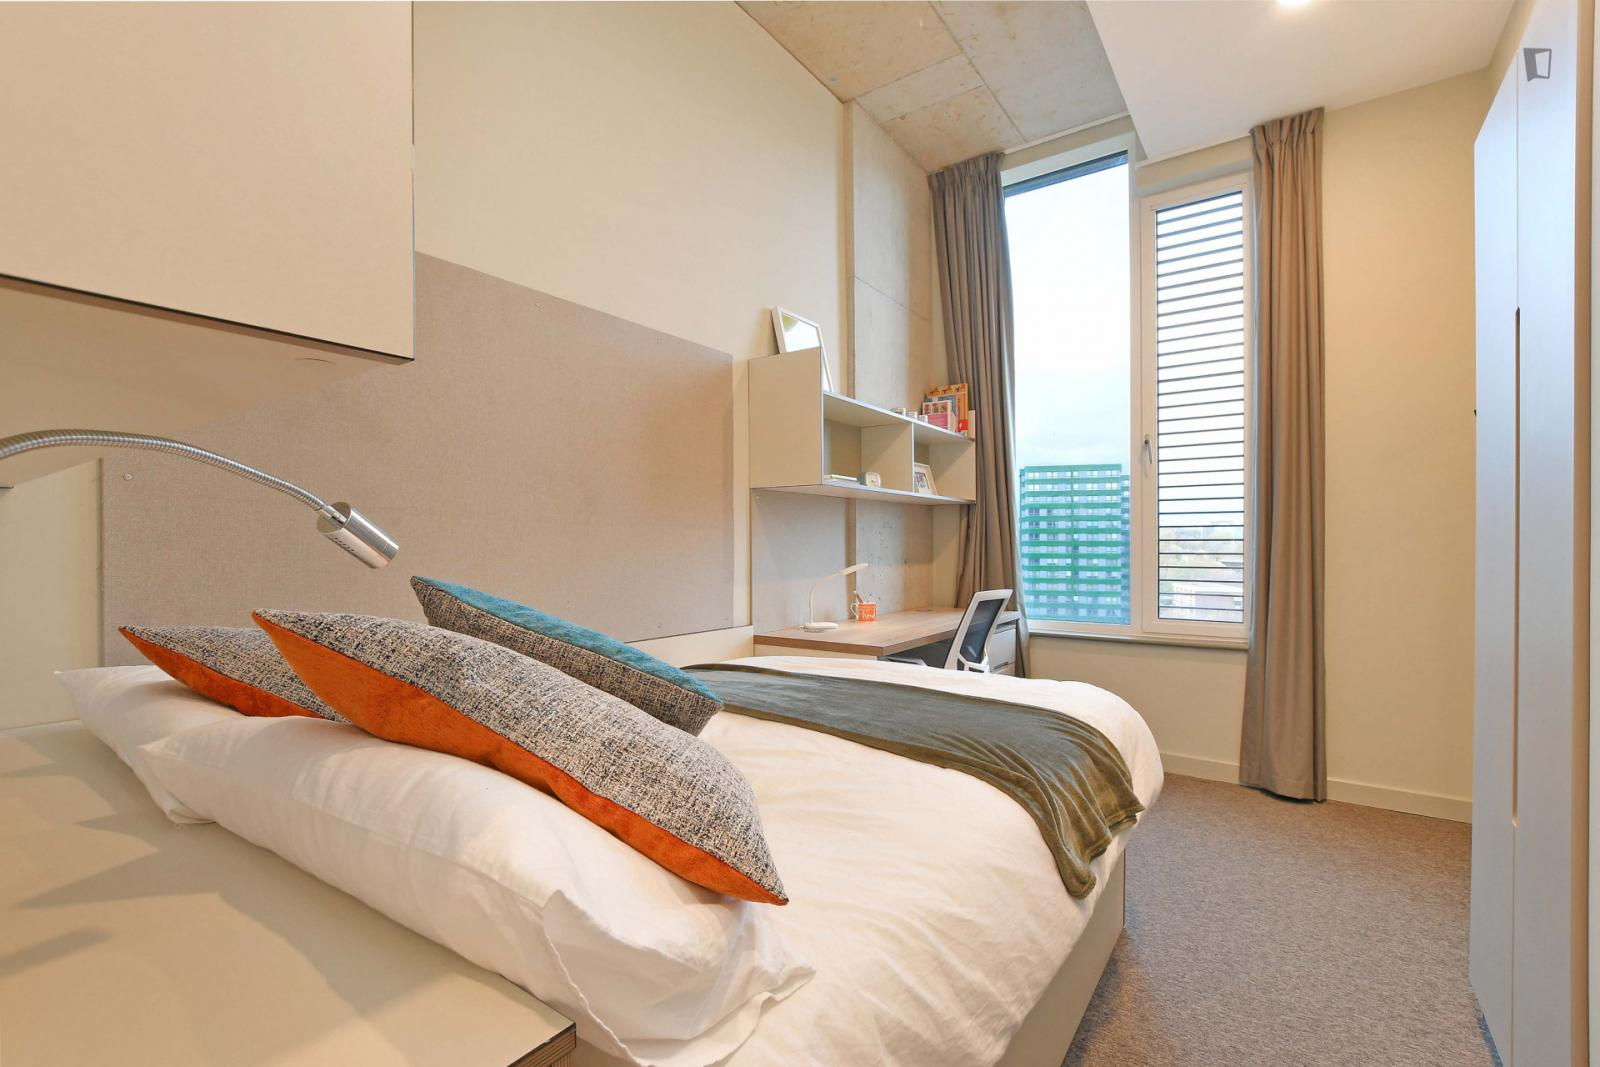 Ecclesall Road - 692USD / month